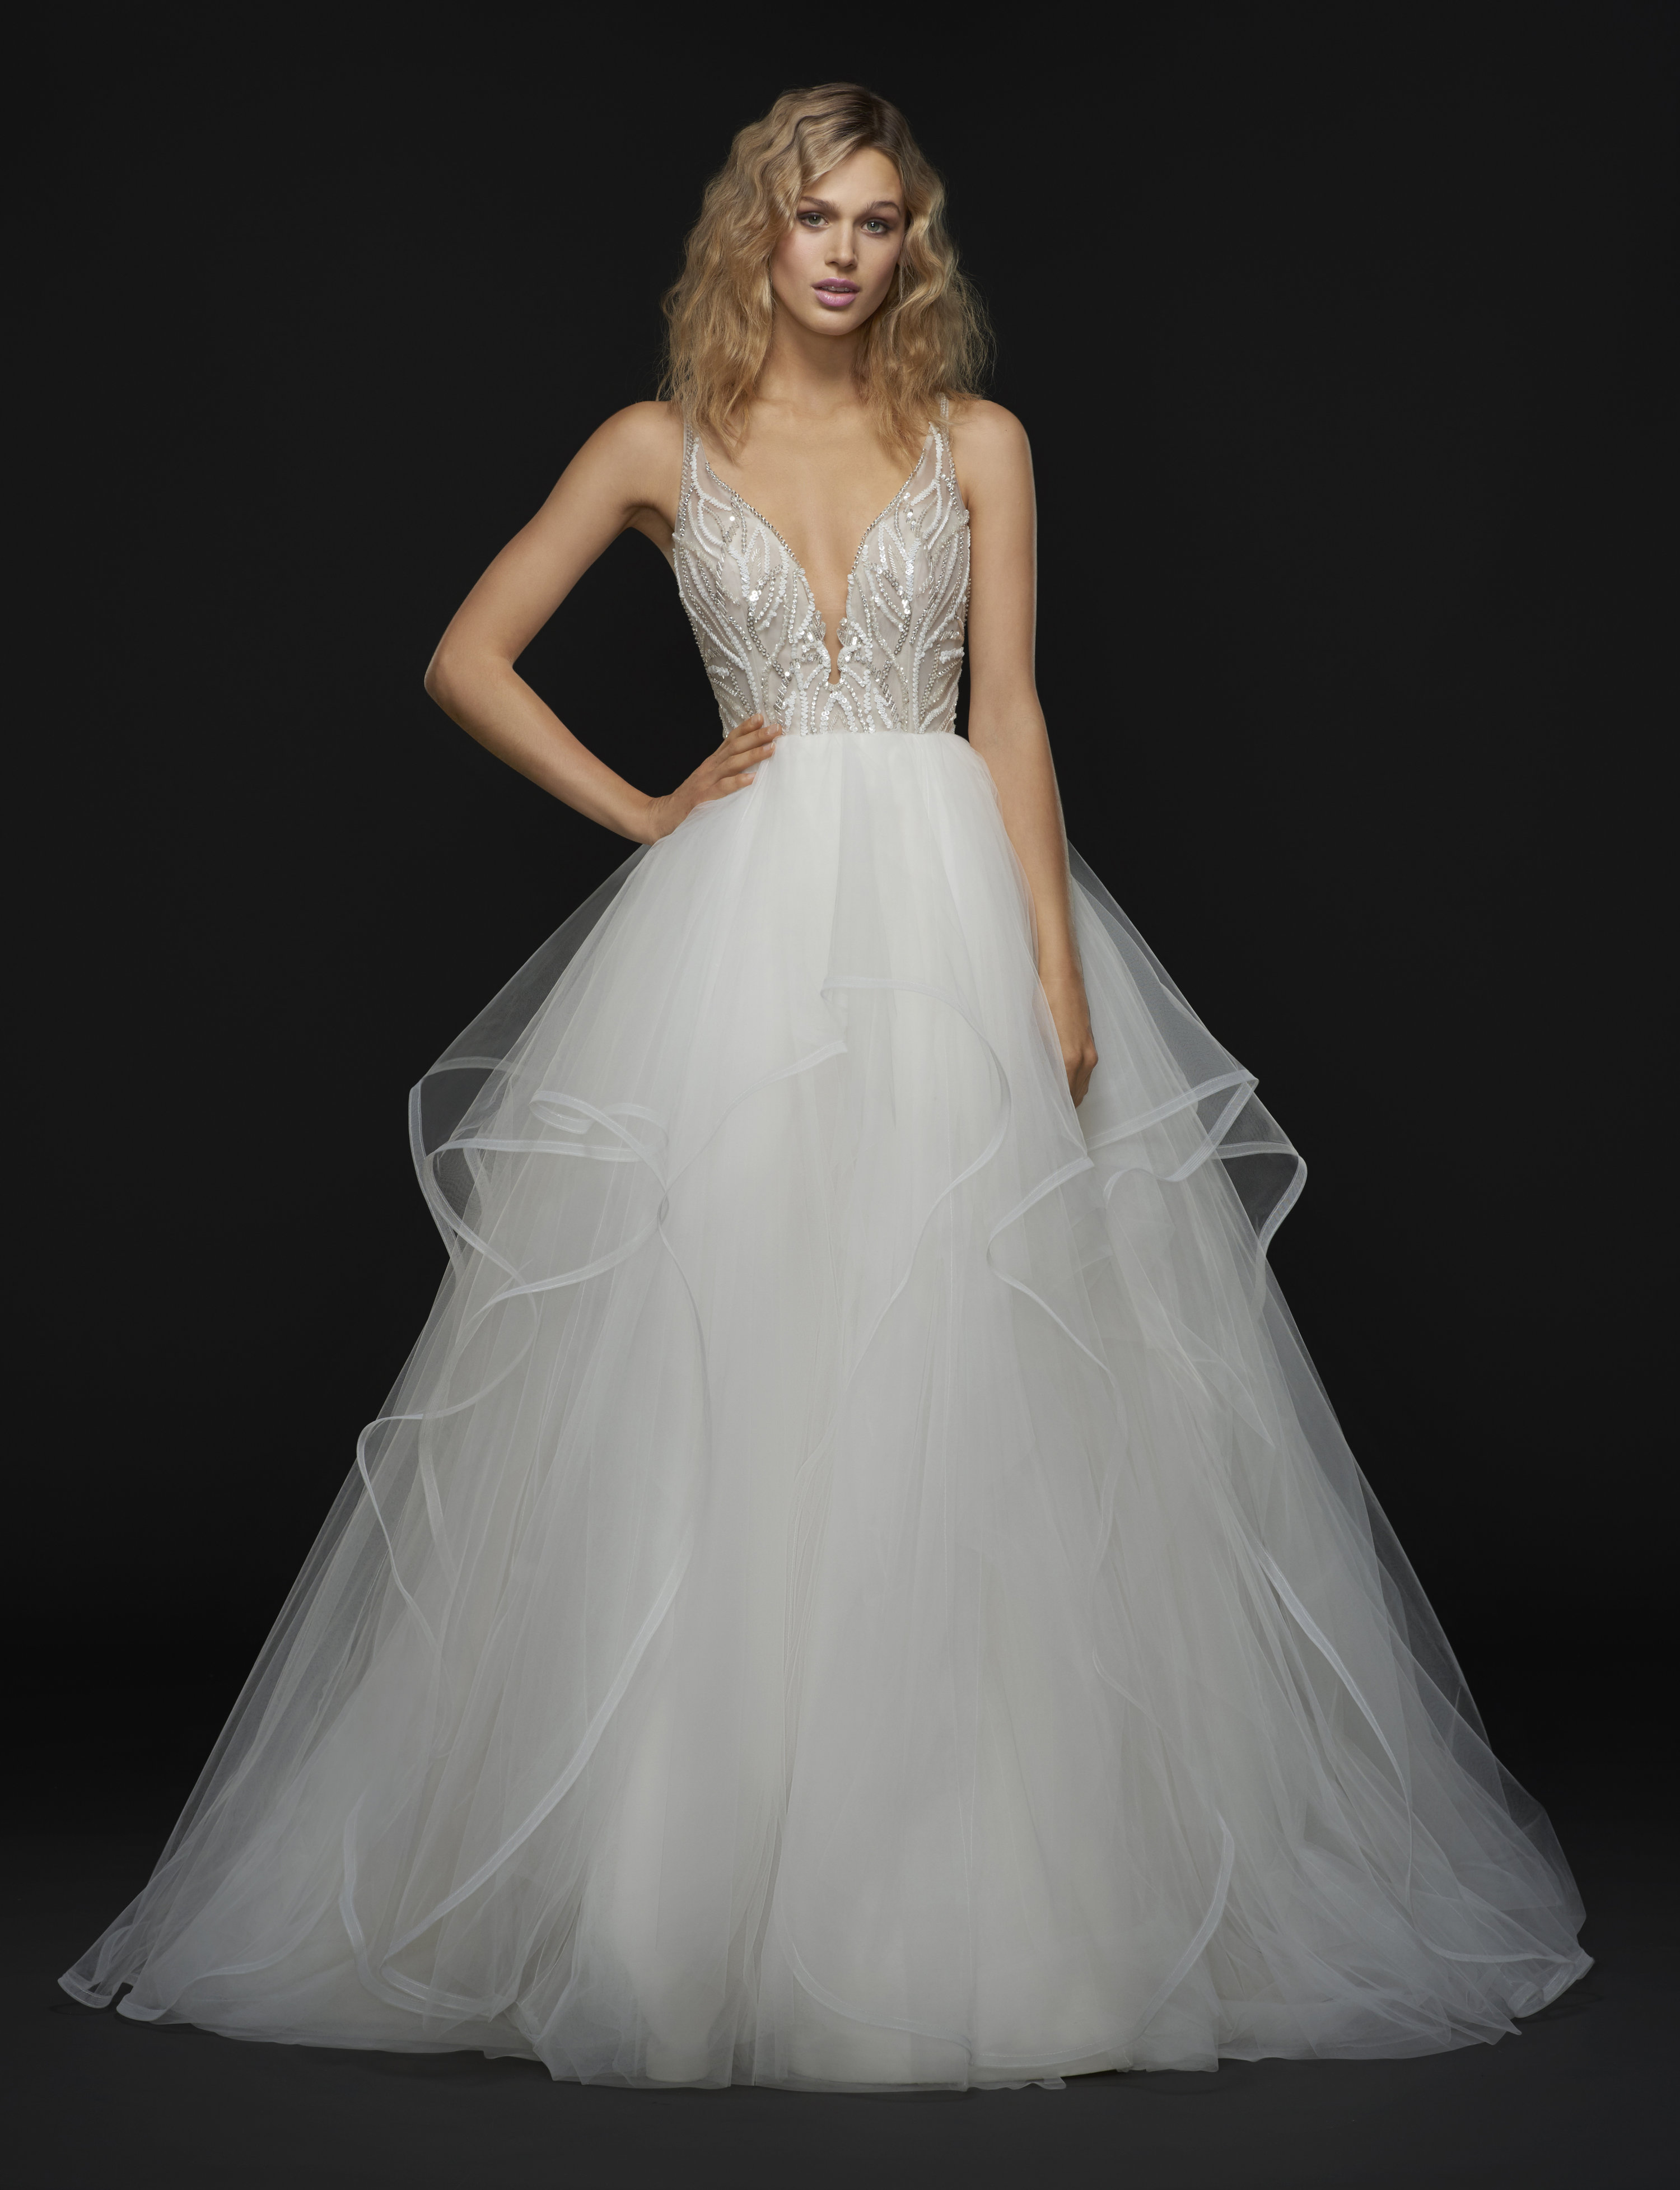 Bridal Gowns and Wedding Dresses by JLM Couture - Style 1750 Lincoln